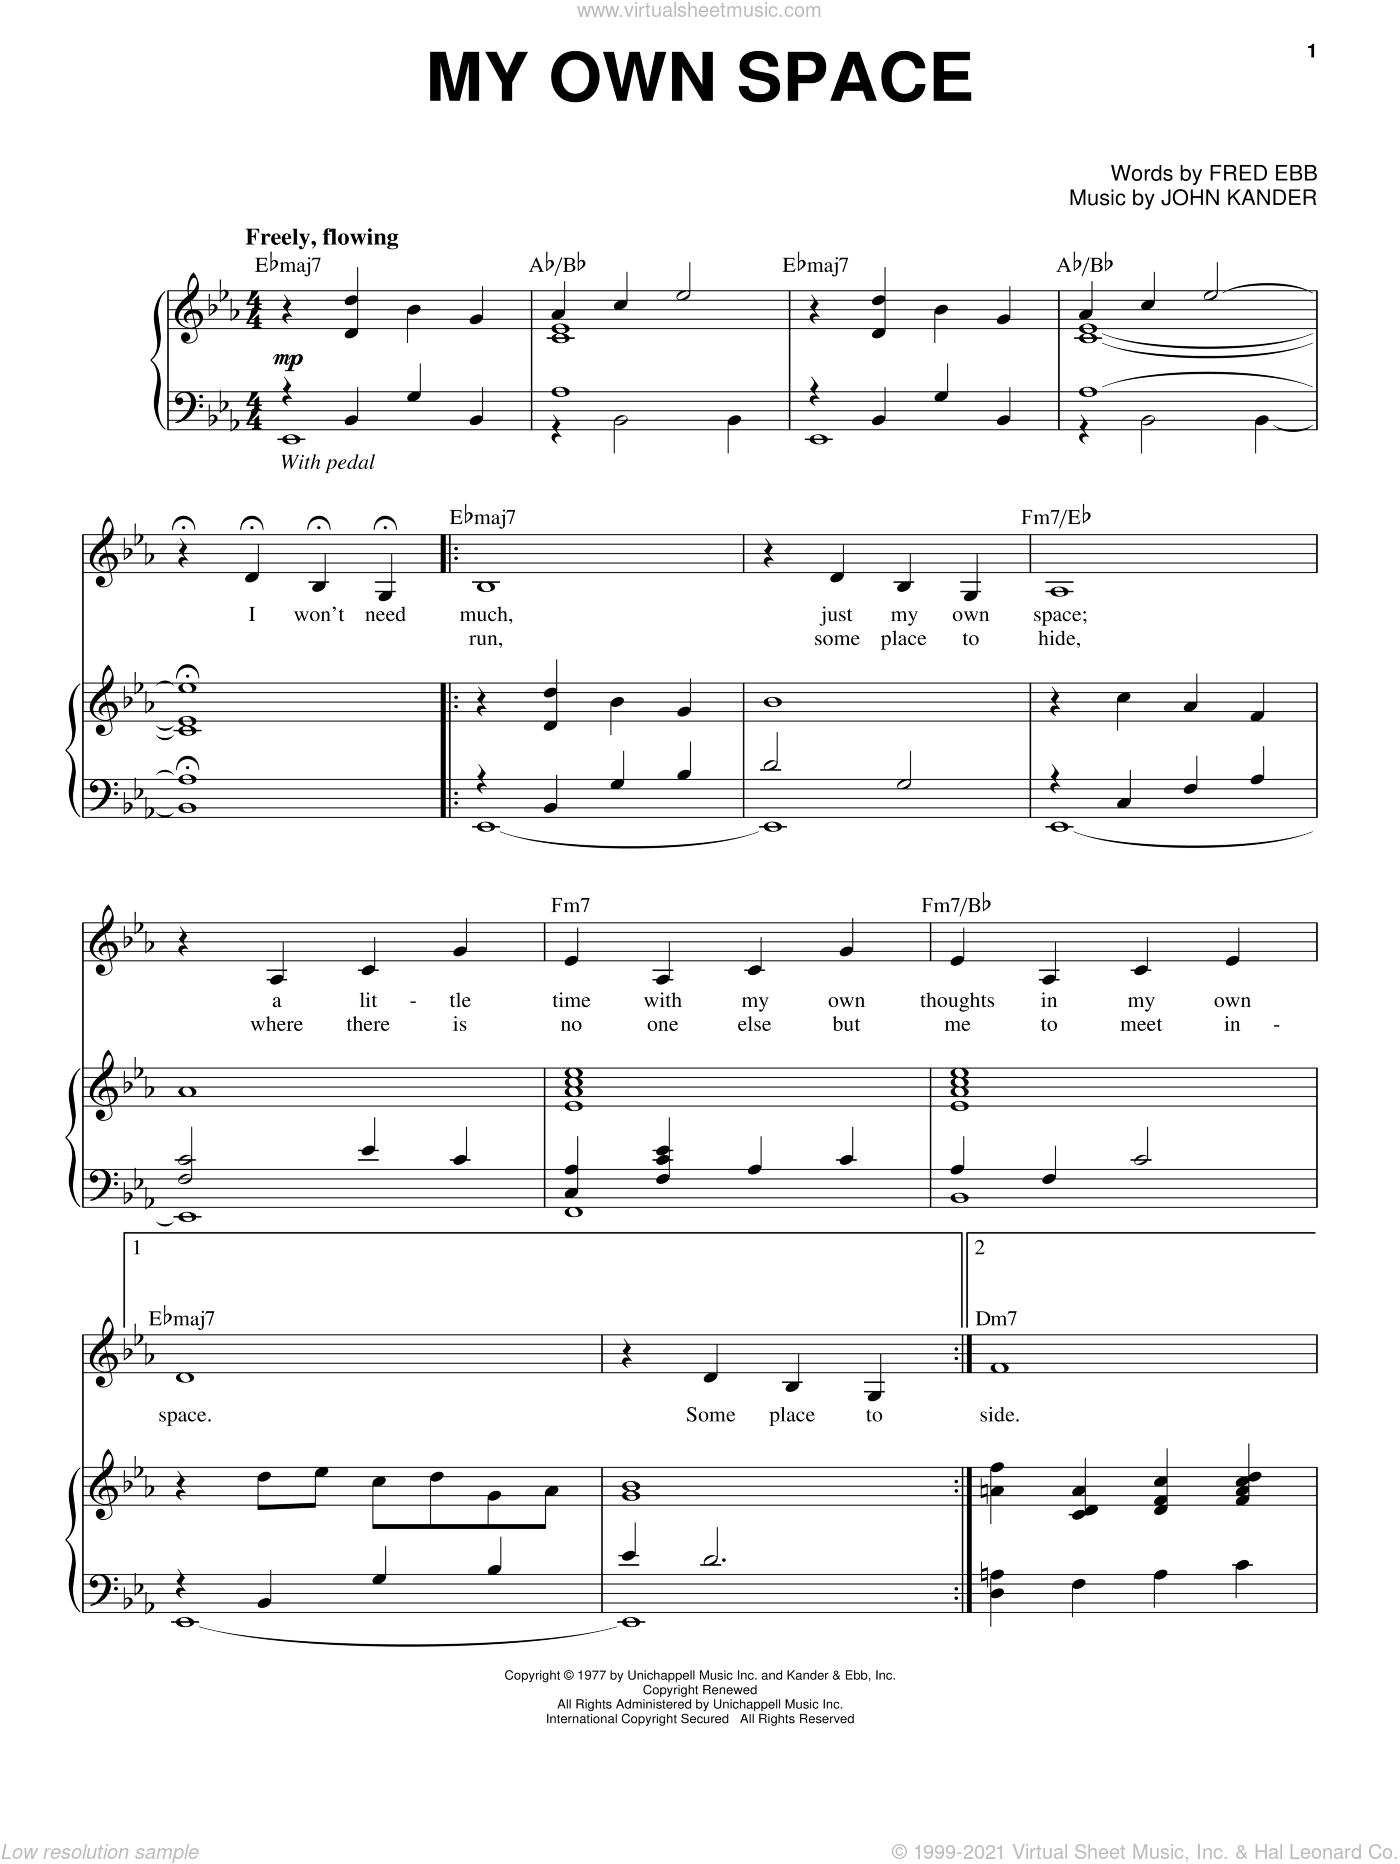 My Own Space sheet music for voice and piano by John Kander